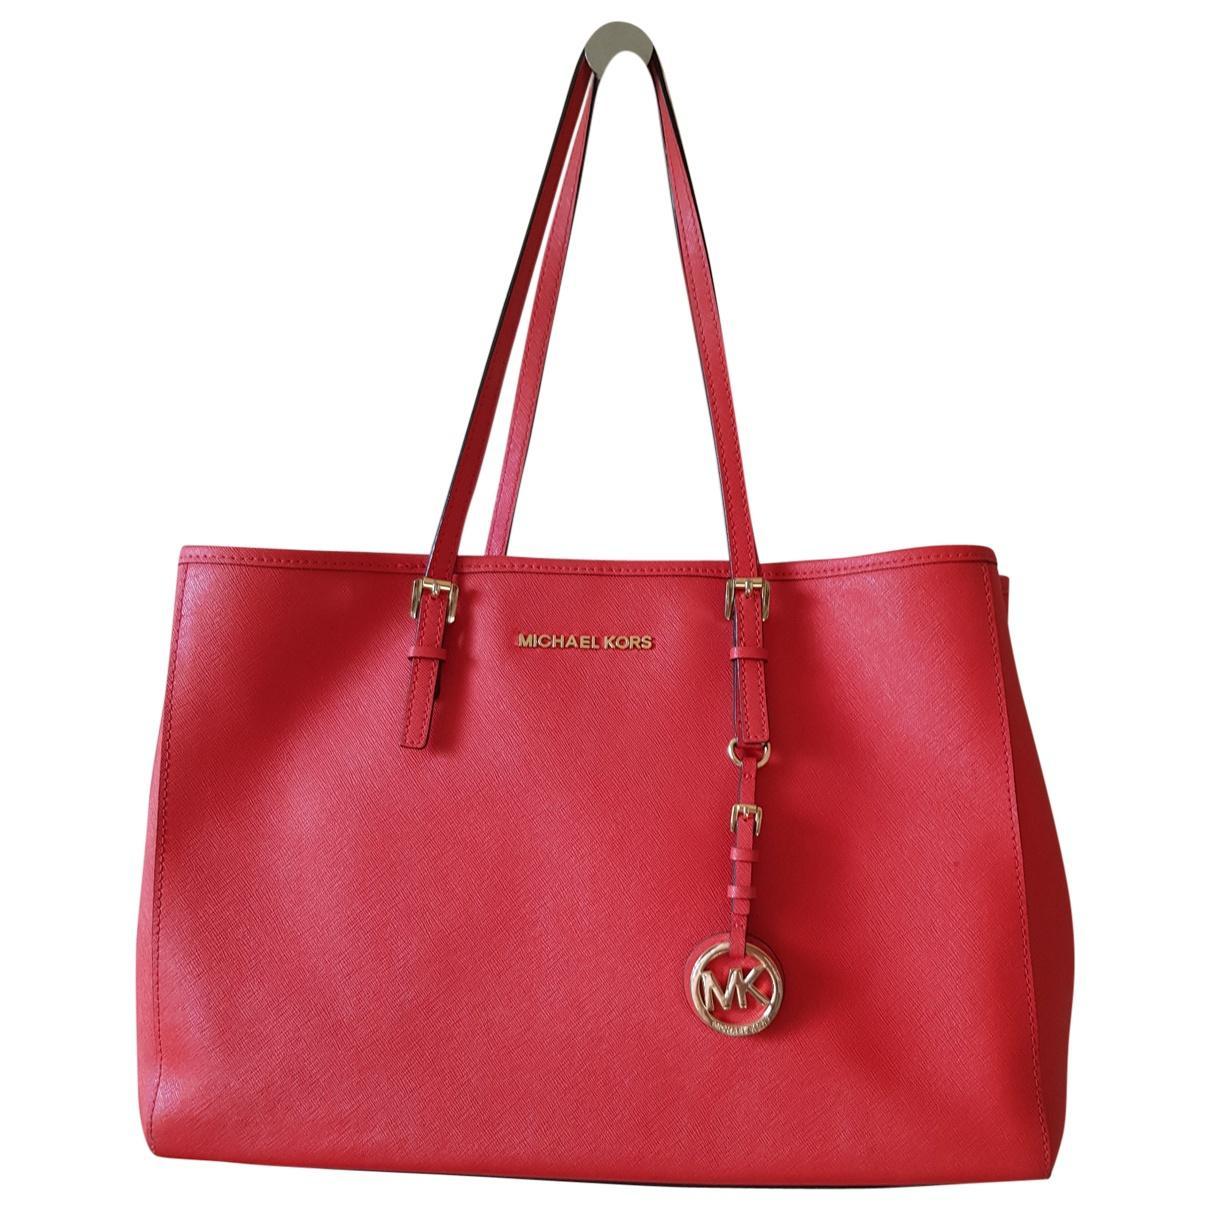 Michael Kors Red Pre Owned Leather Tote Lyst View Fullscreen